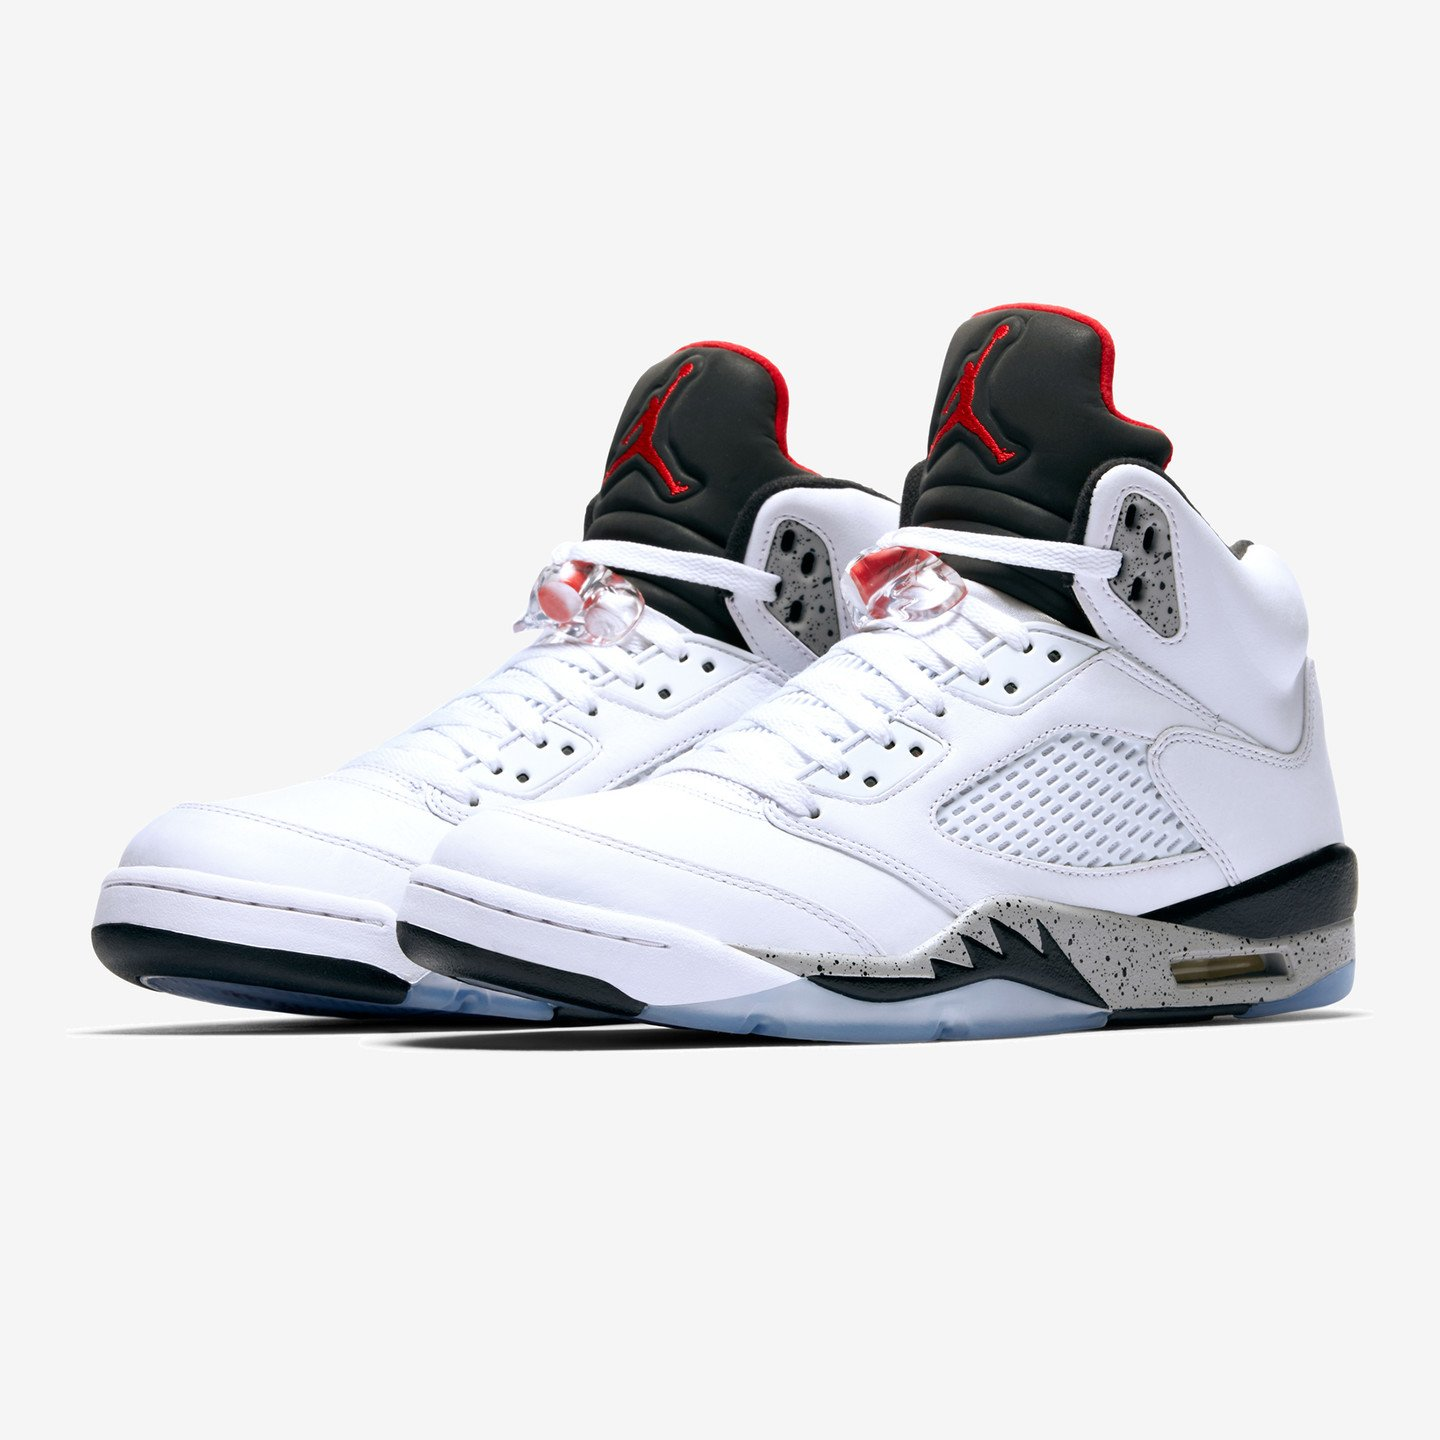 Jordan Air Jordan 5 Retro White / University Red / Black 136027-104